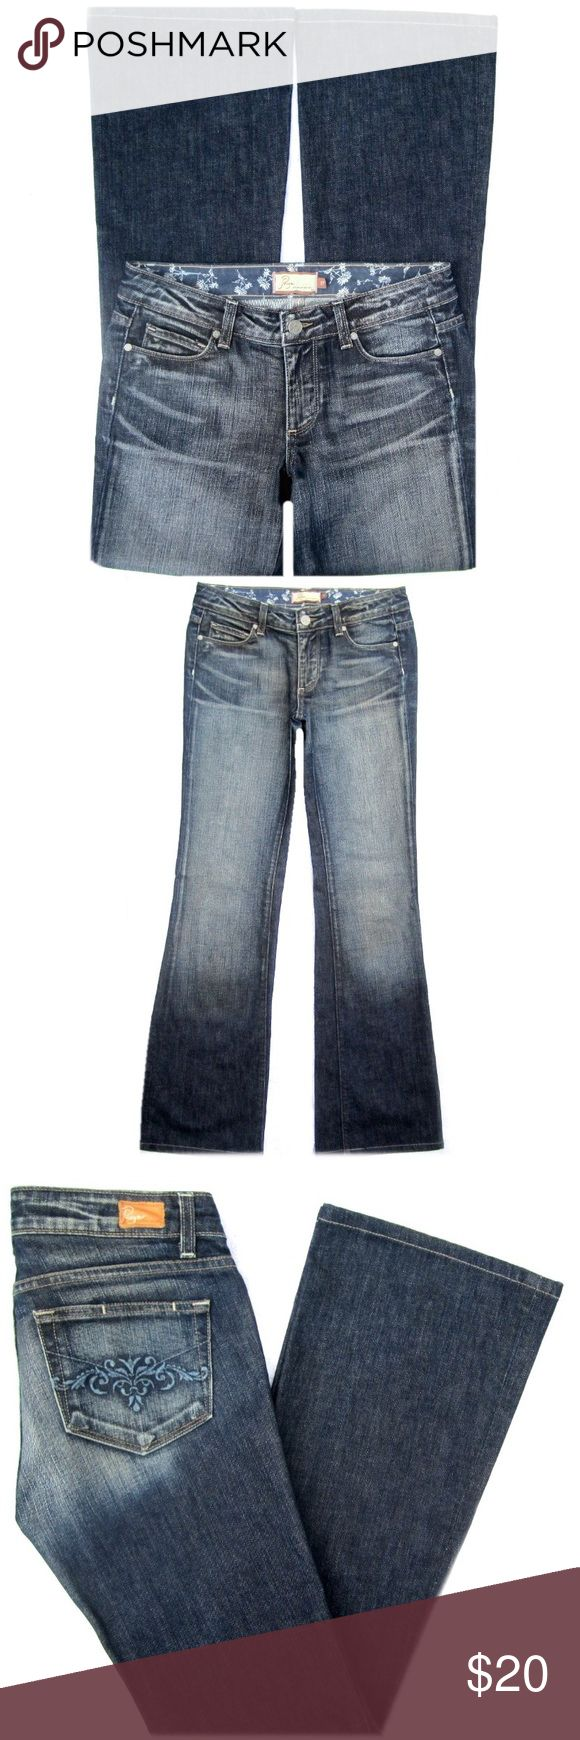 "Paige Premium Denim Hollywood Hills Jeans Paige Premium Denim 'Hollywood Hills' stretch jeans. Medium blue, distressed wash. Cotton/Elastane. Size 27. They have a 7"" rise and 31"" inseam. They have been hemmed. Amazing fit! Paige Jeans Jeans"